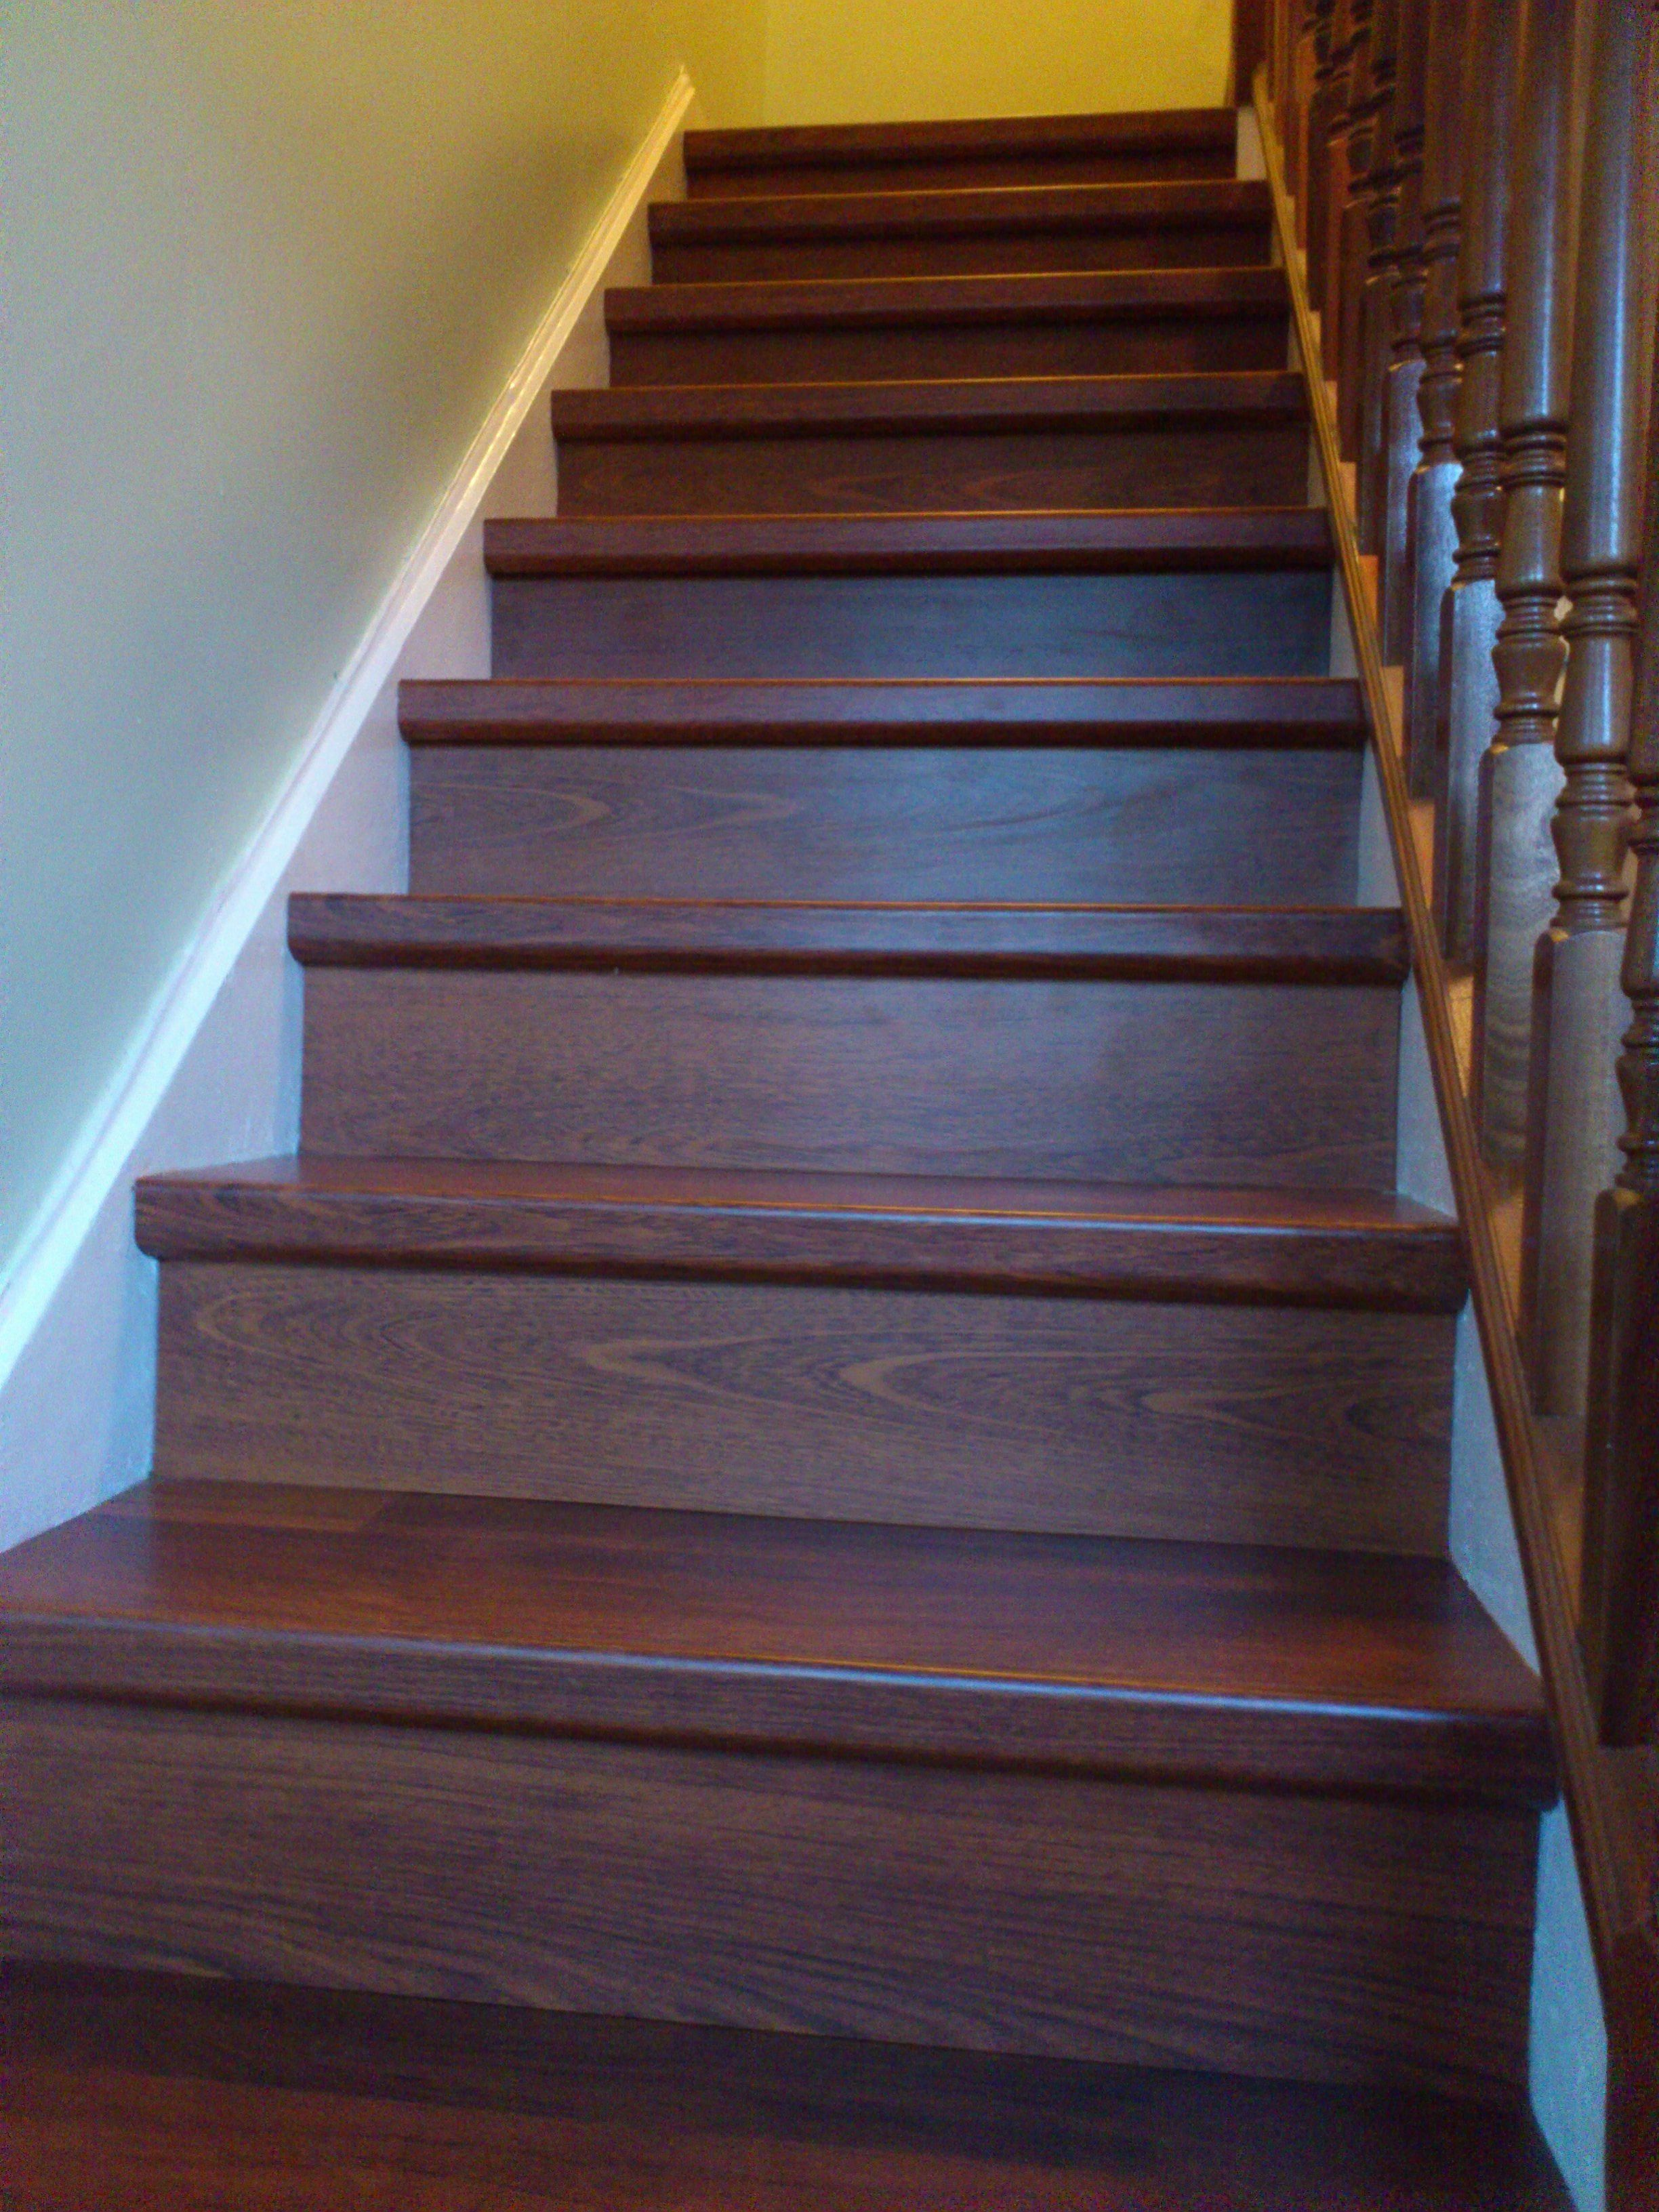 Best Quick Step Laminate Flooring On Stairs Dublin Ireland 400 x 300